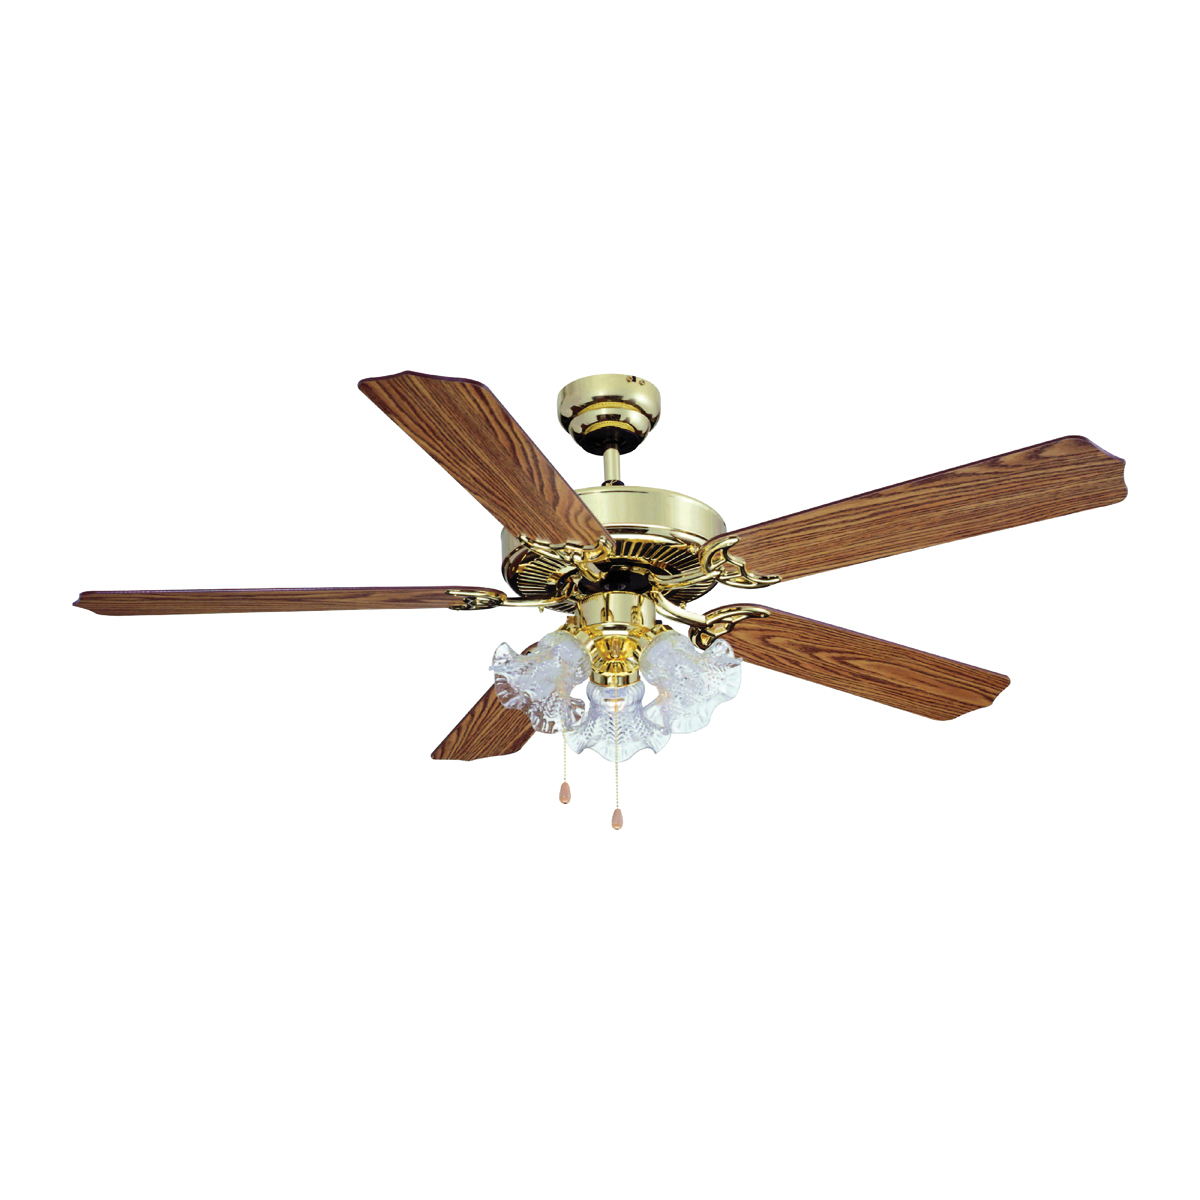 Picture of Boston Harbor CF-78021L Ceiling Fan Light Kit, 0.8 A, 120 V, 5-Blade, 52 in Sweep, 2942 cfm Air